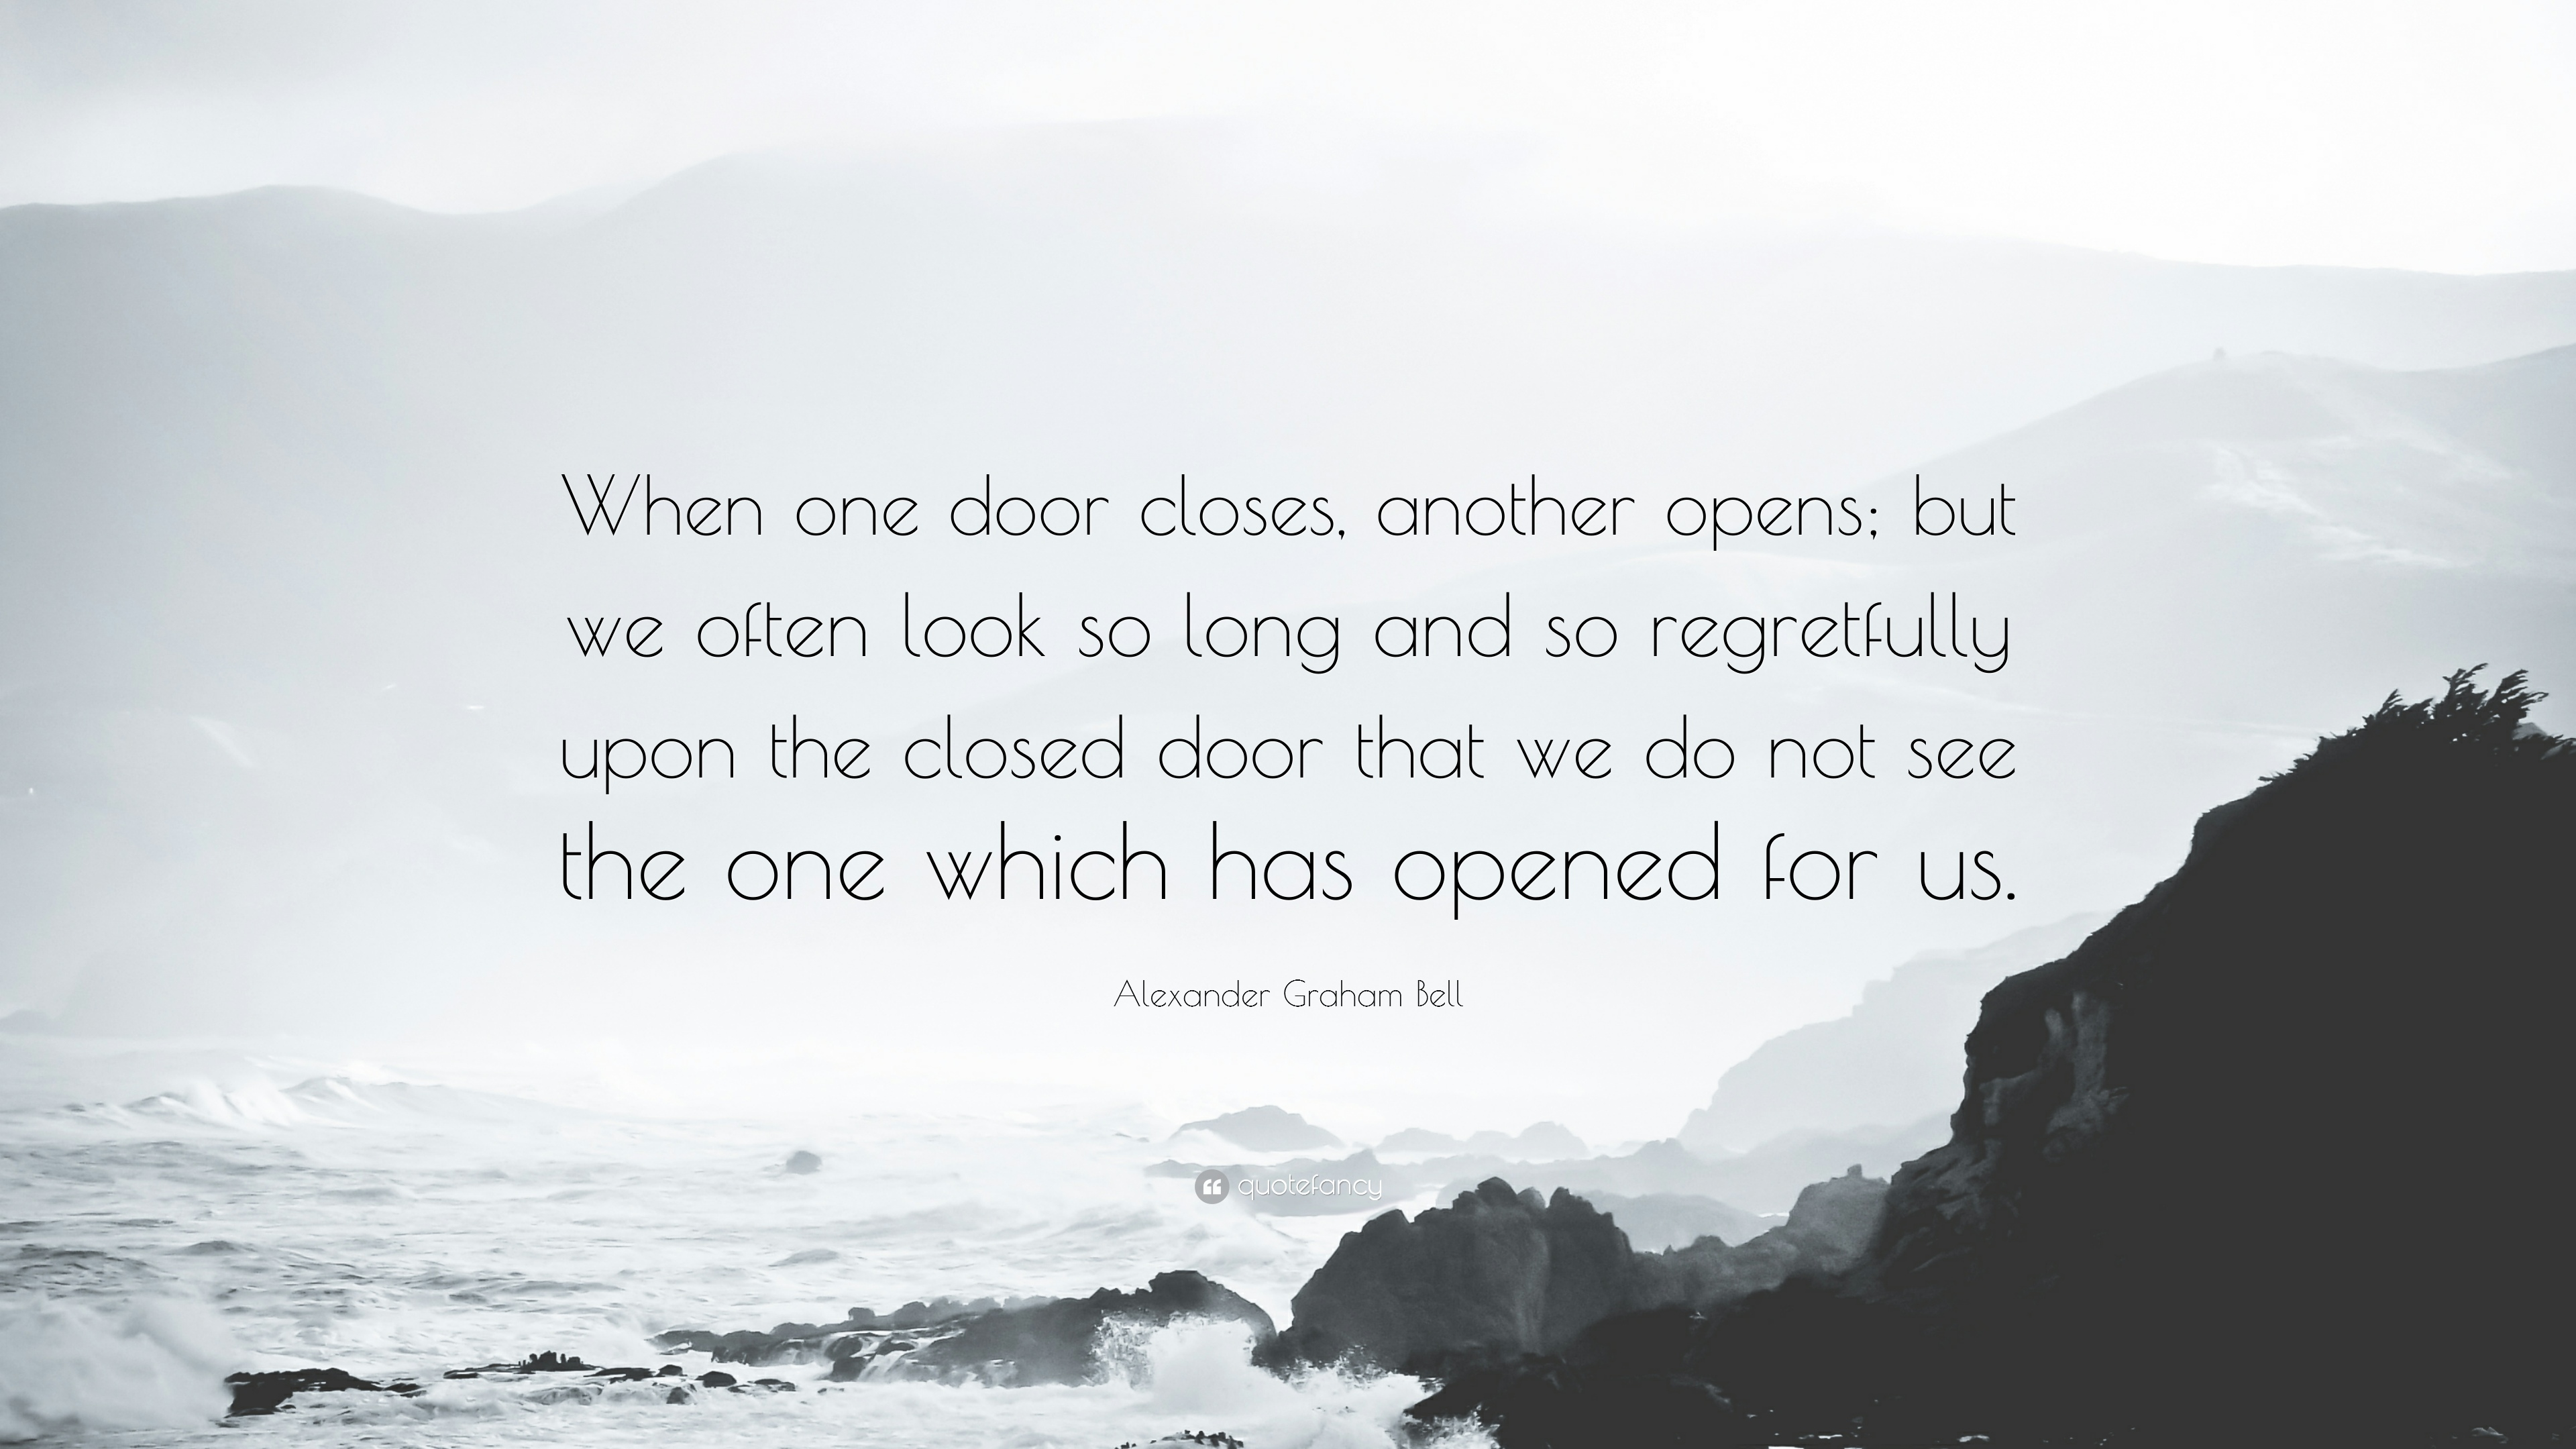 Alexander Graham Bell Quote: U201cWhen One Door Closes, Another Opens; But We